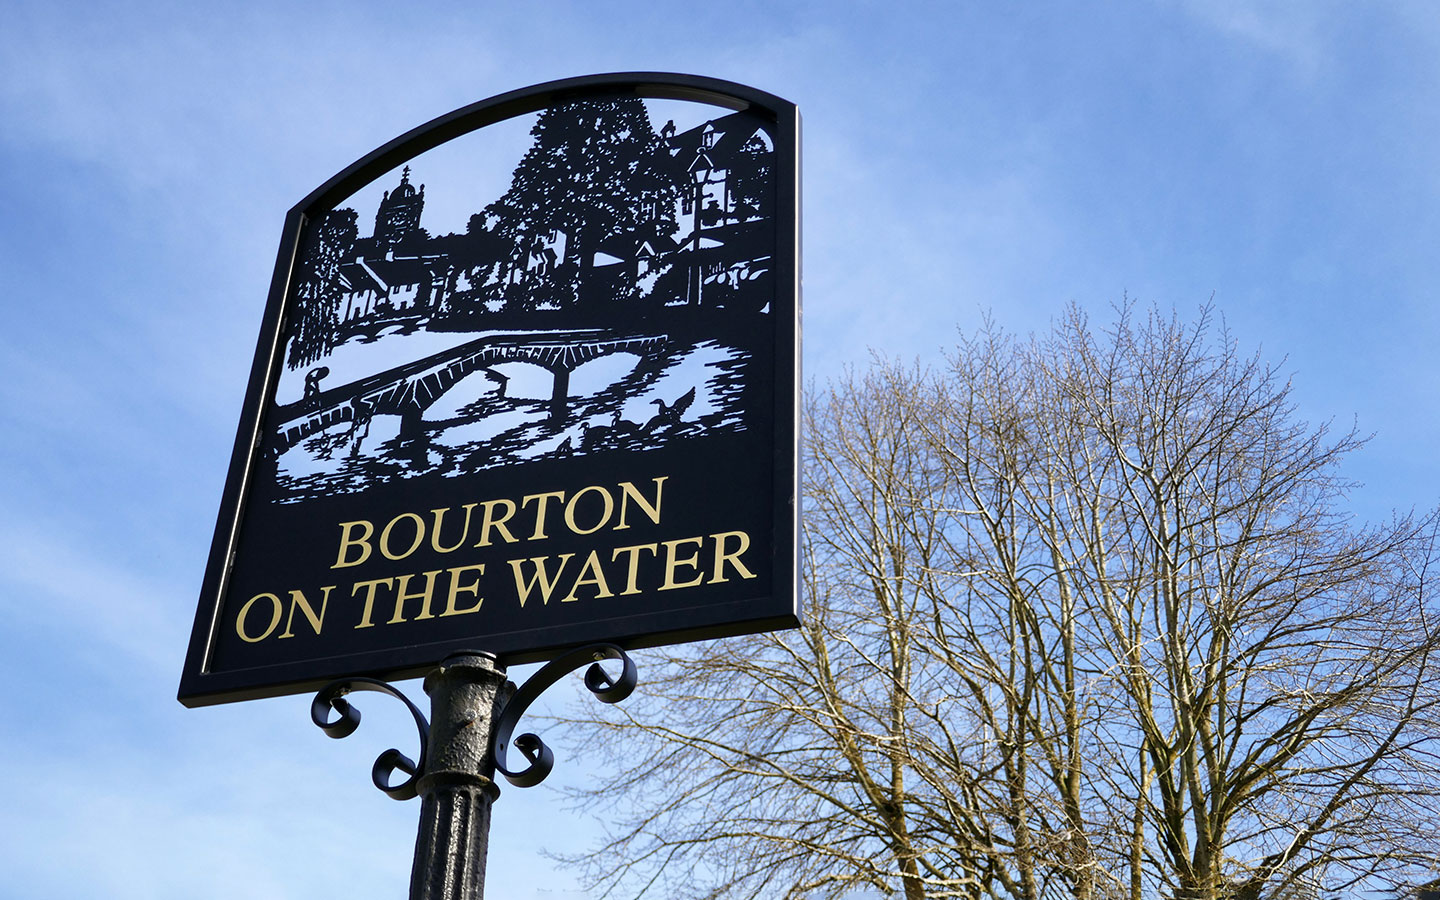 Village sign in Bourton-on-the-Water